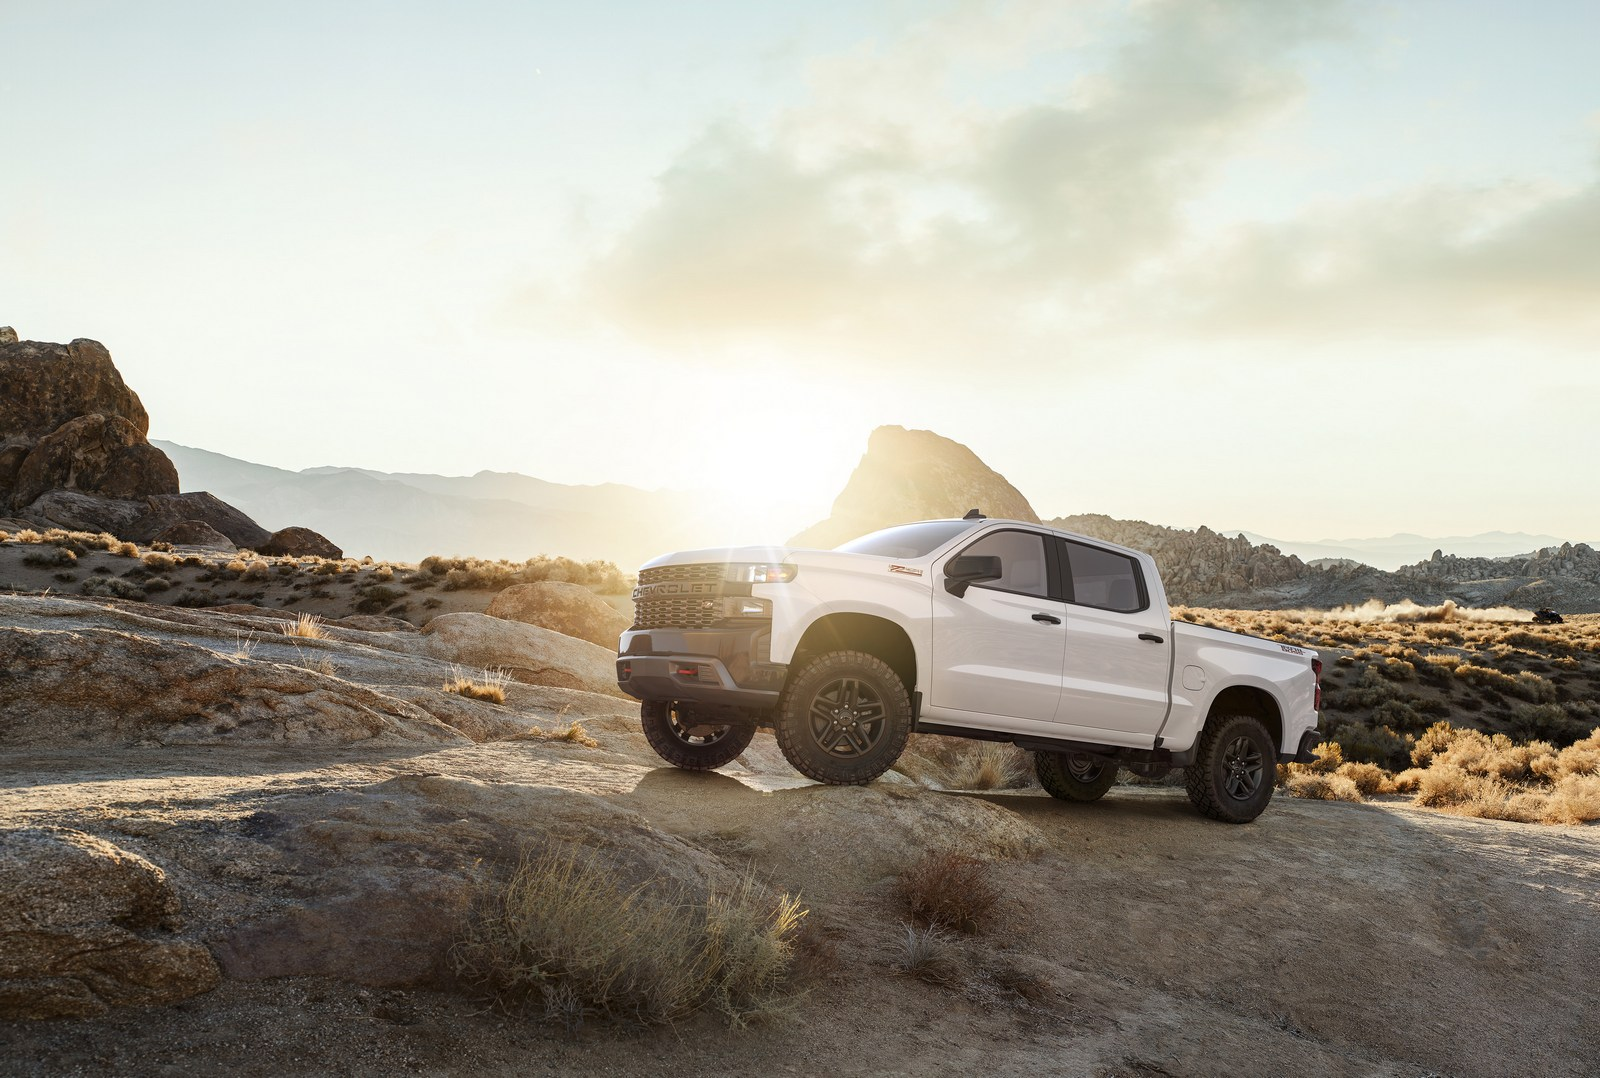 2019 Chevrolet Silverado Engine Range Includes 3.0-liter ...